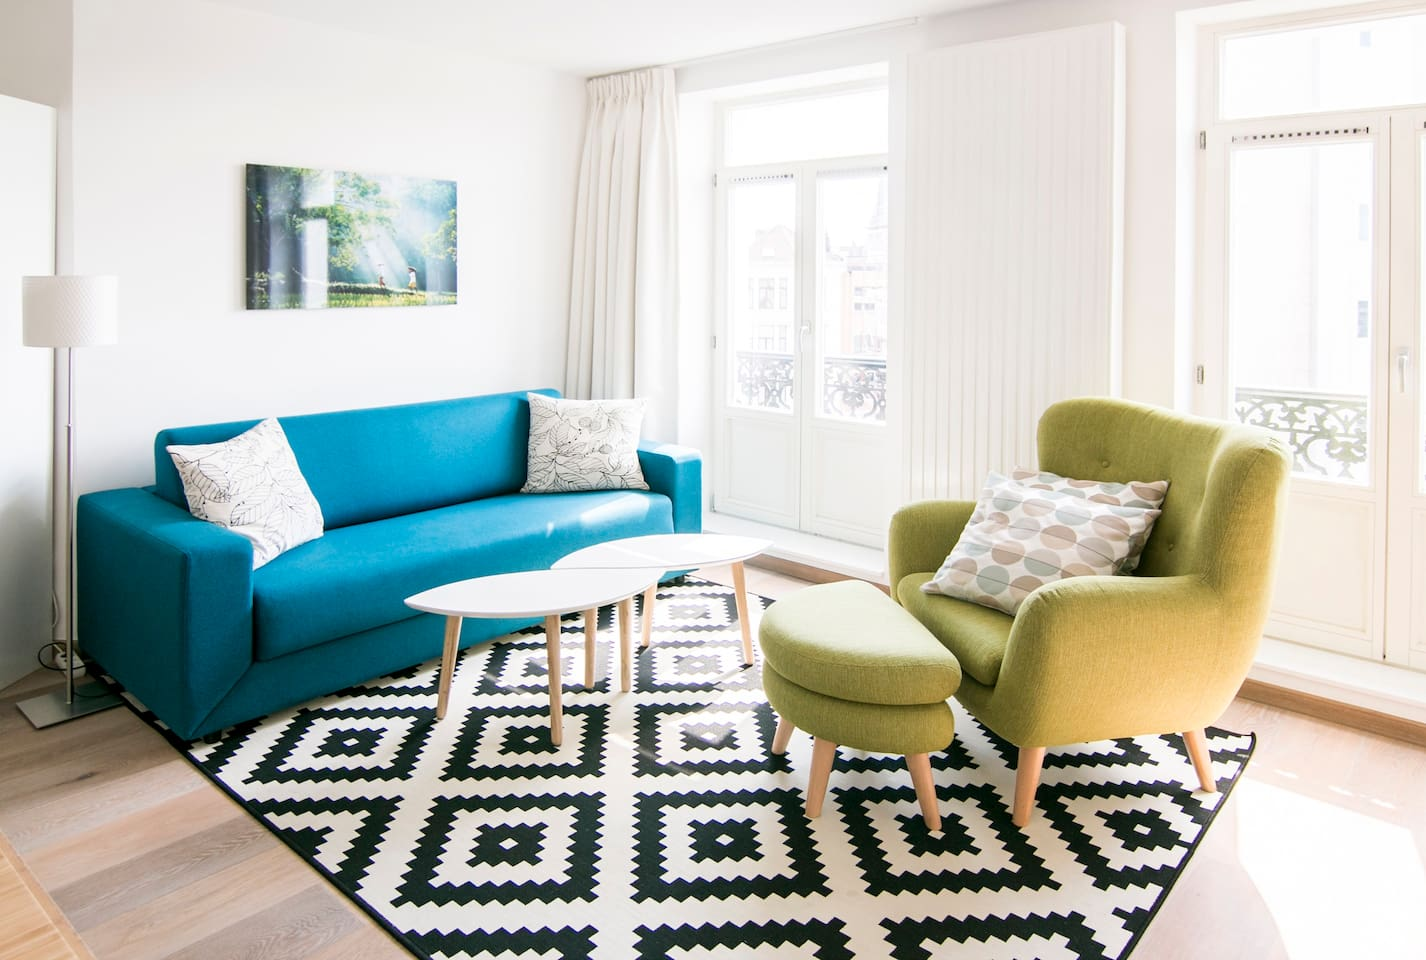 Welcome to Cosy Flat Brussels - right in the heart of Brussels